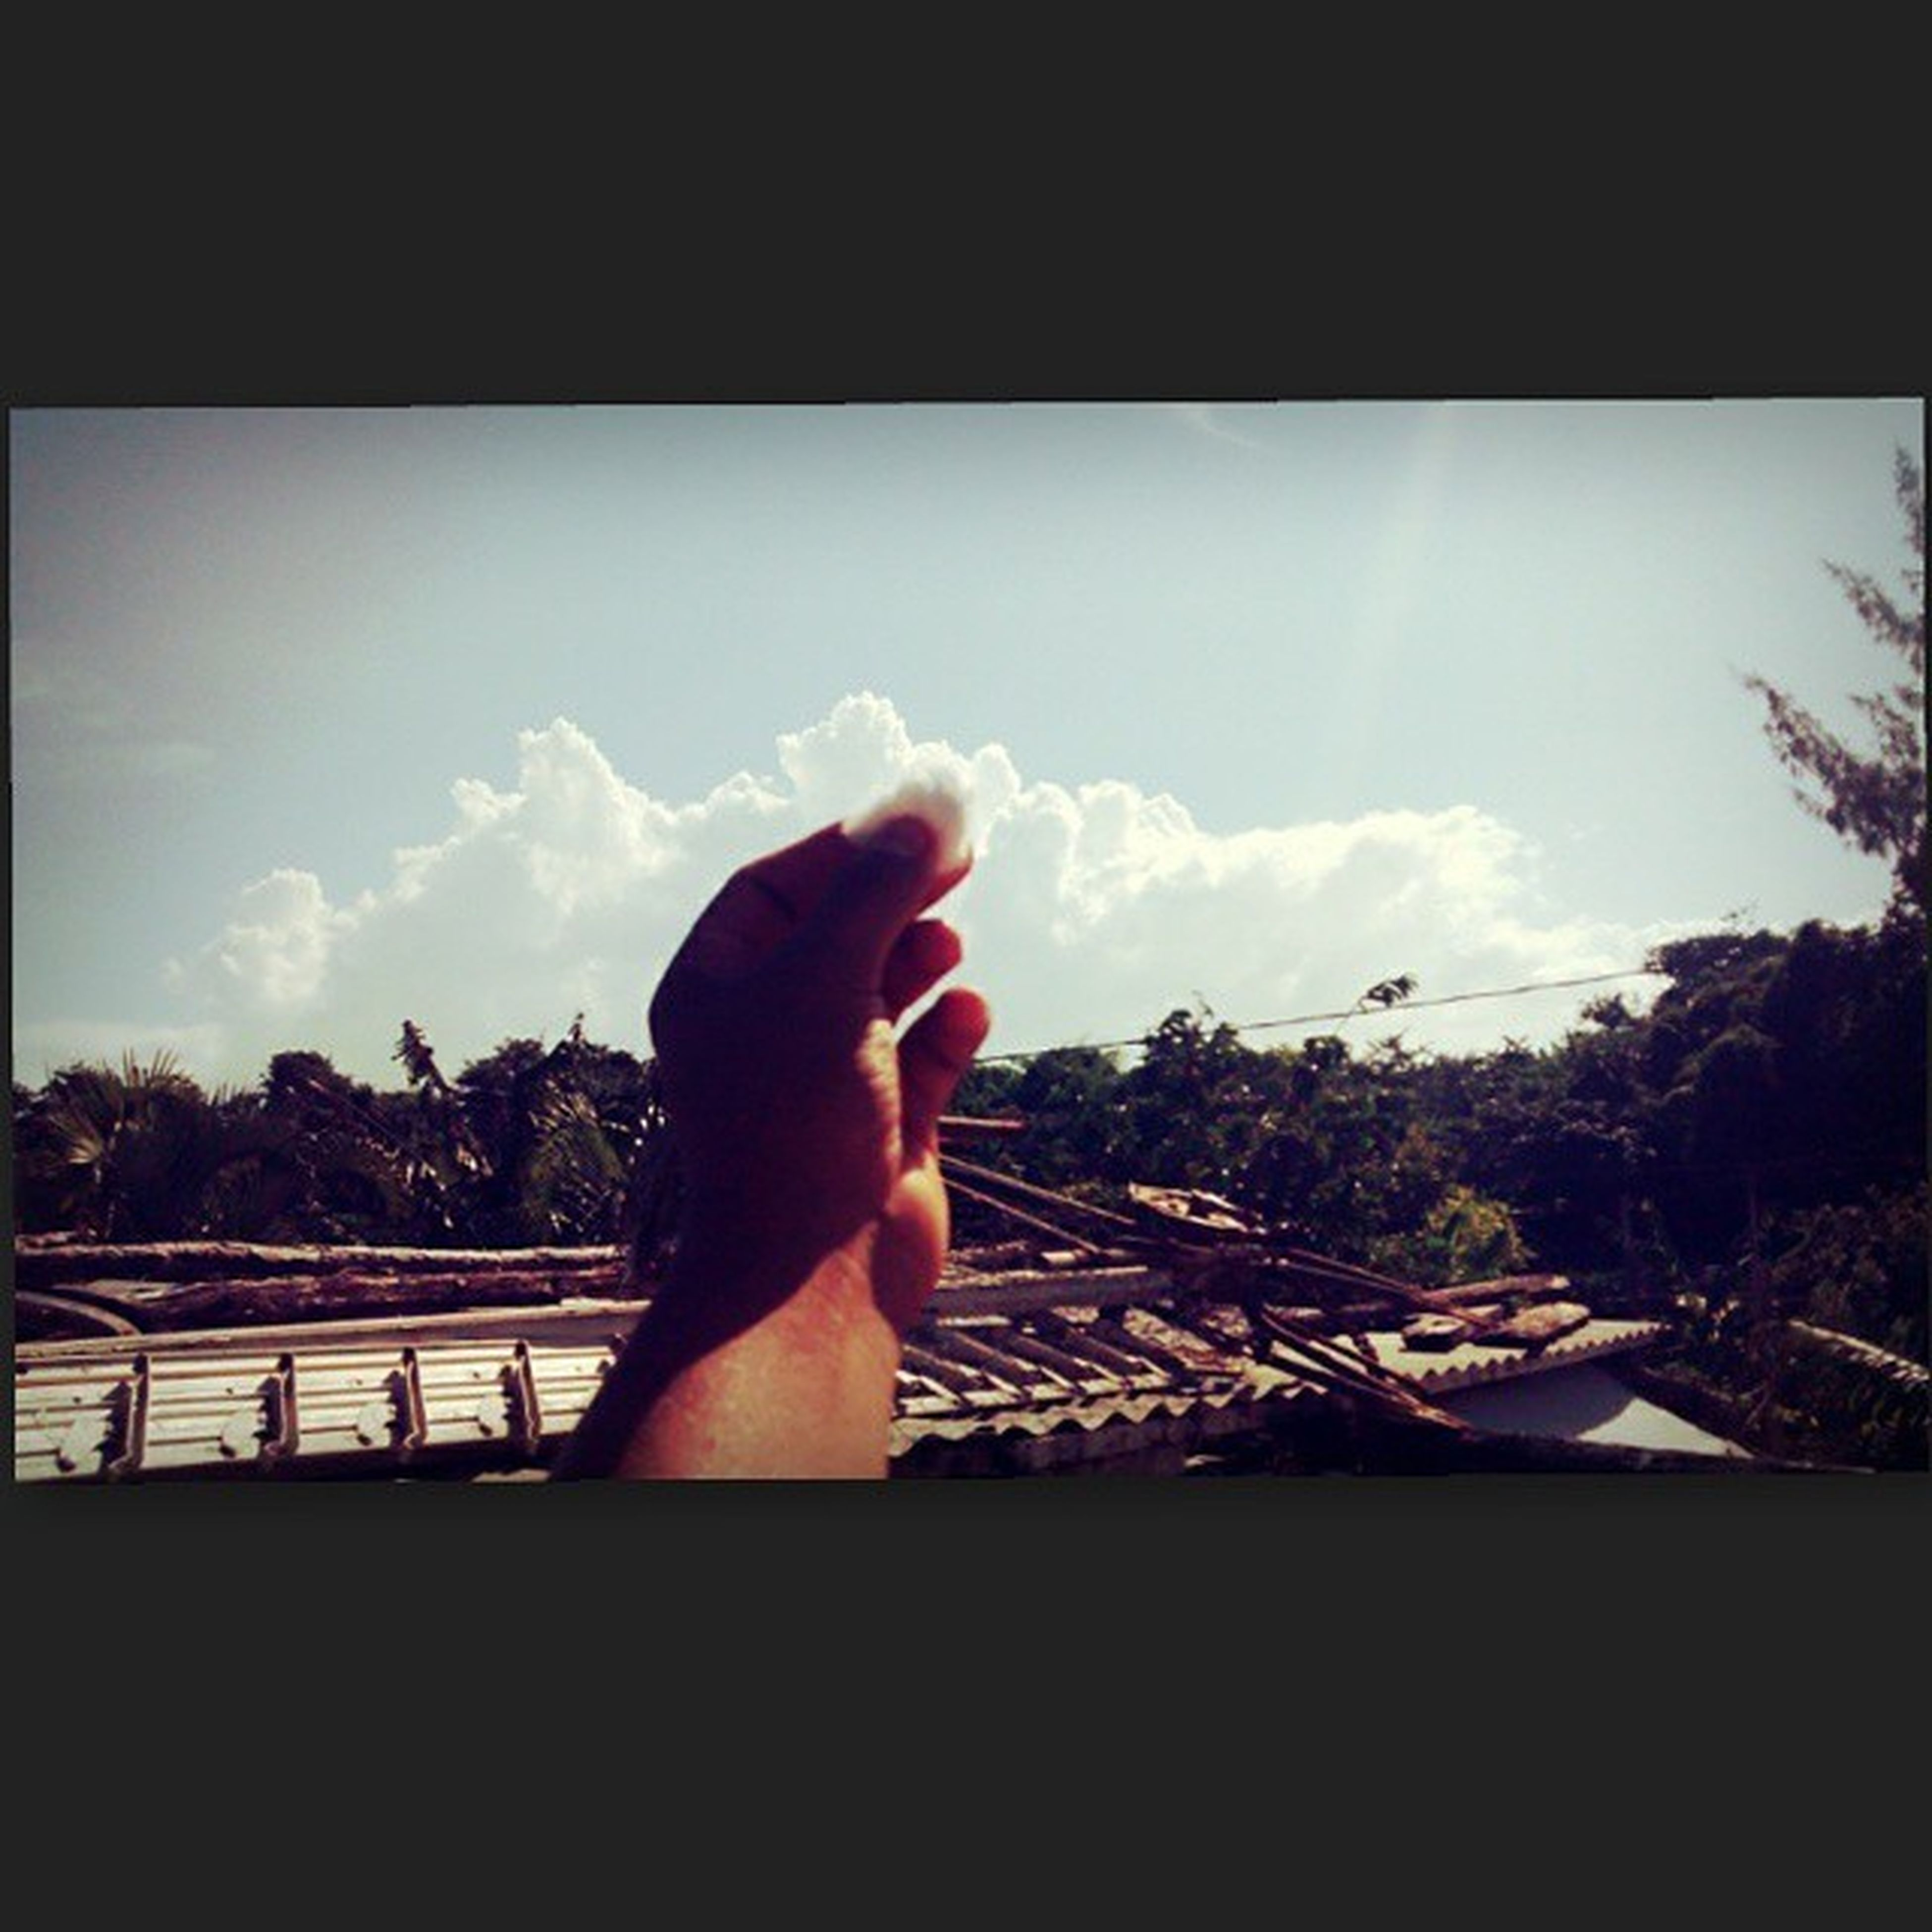 person, sky, part of, lifestyles, transfer print, auto post production filter, personal perspective, cropped, sunlight, leisure activity, relaxation, human finger, cloud, tree, window, nature